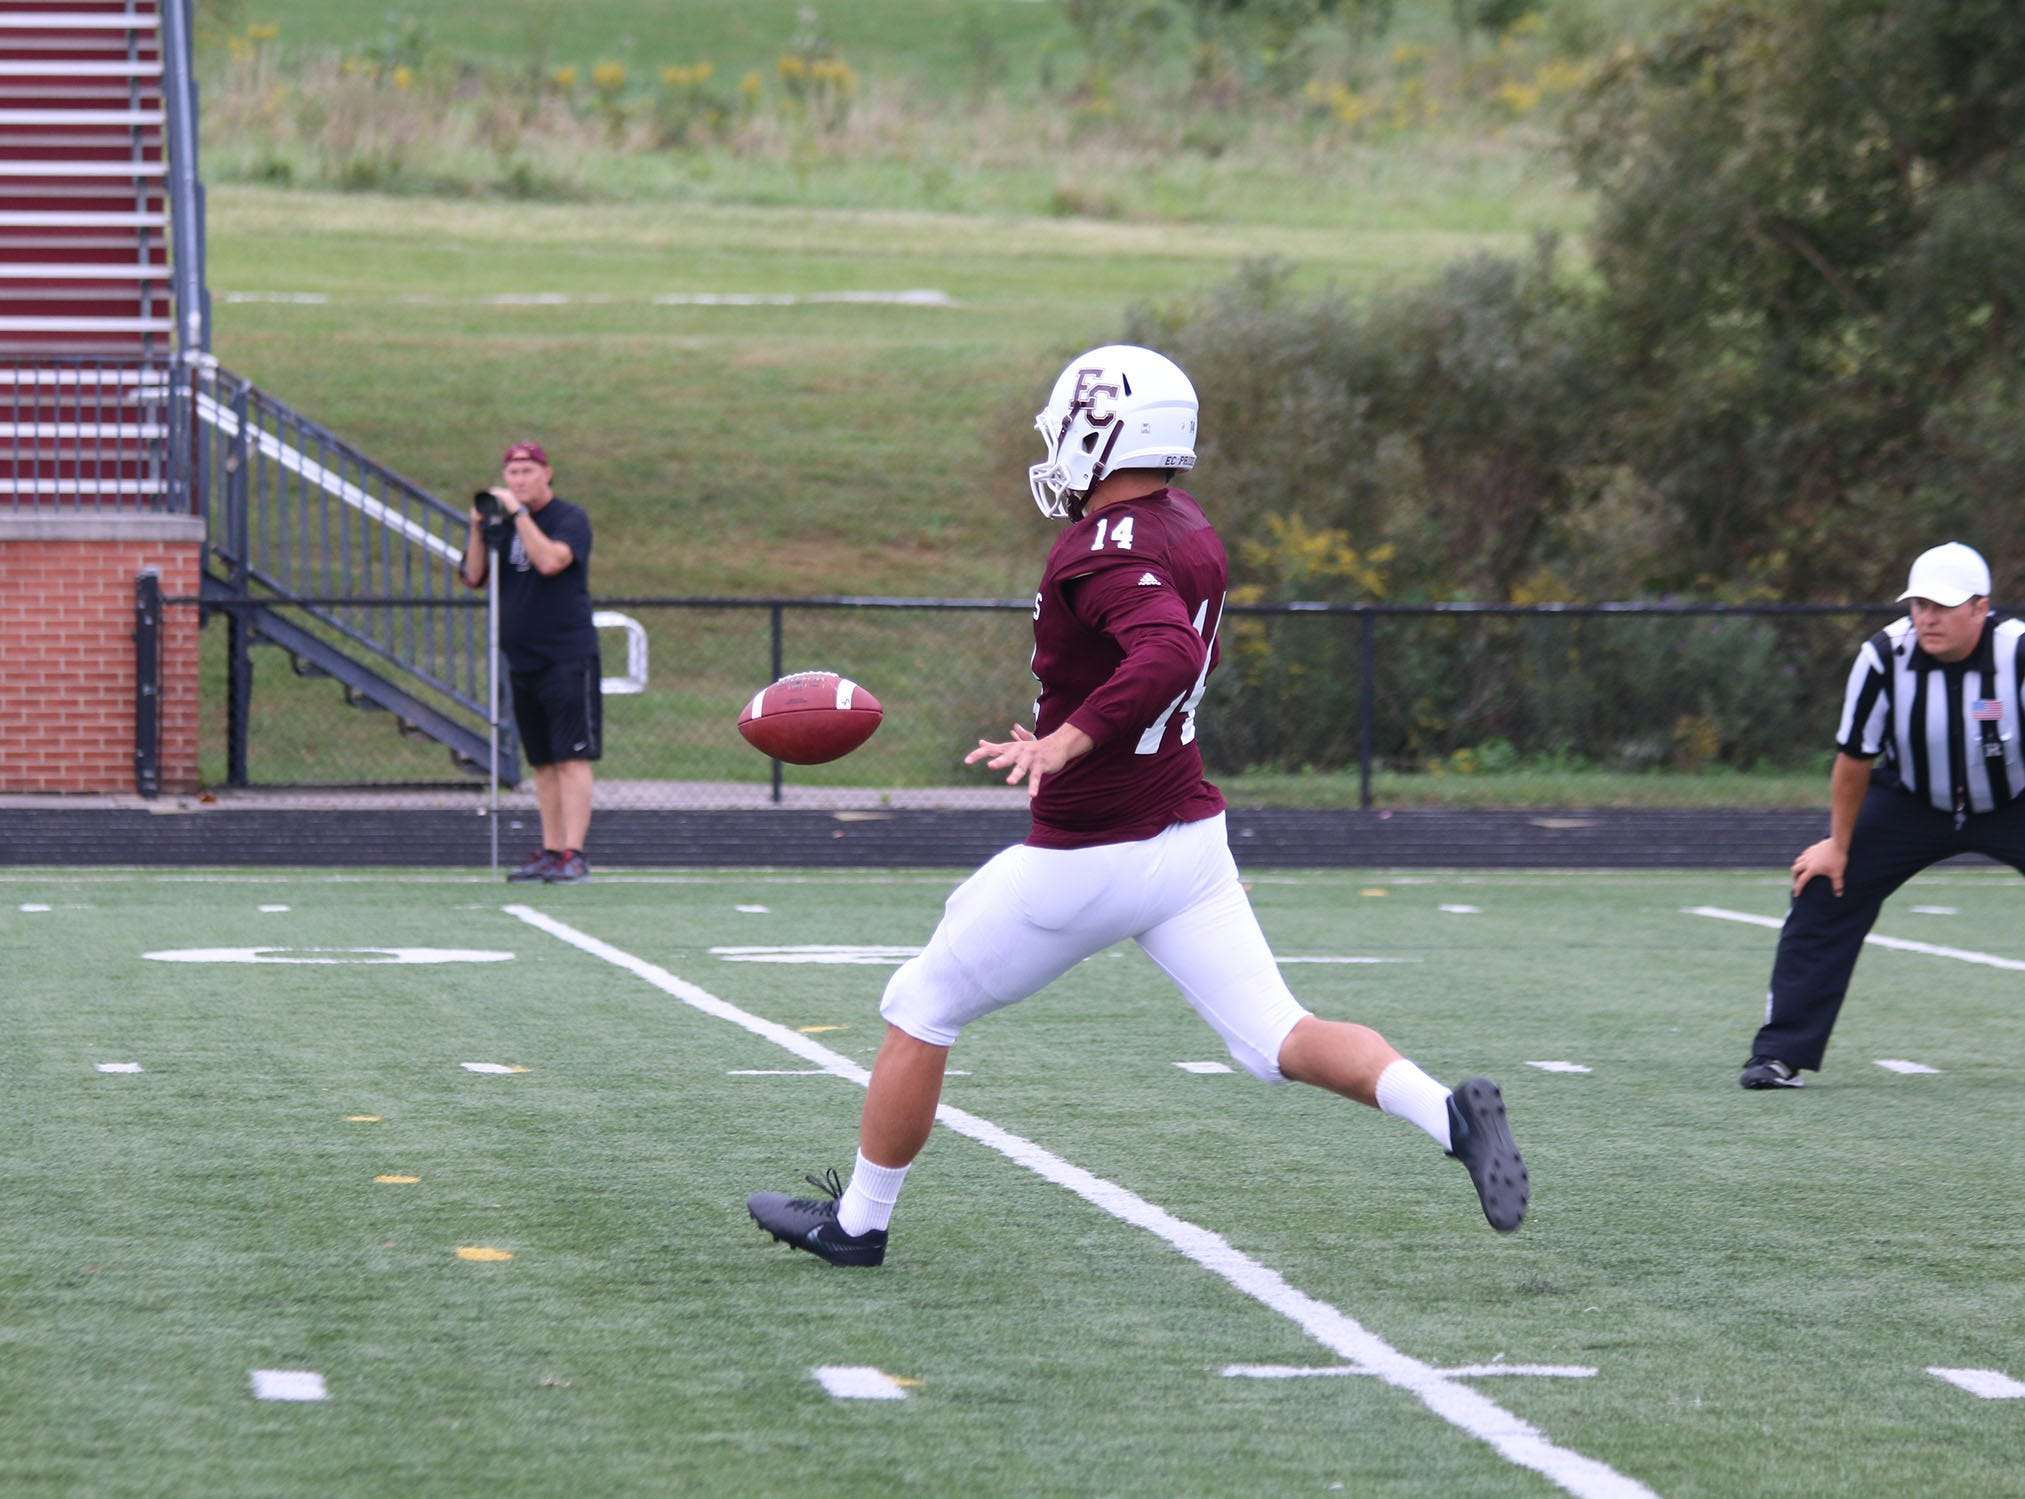 Jordan Christian, a 2016 Richmond High School graduate, led the Heartland Collegiate Athletic Conference in both total punts (61) and punt average (38.7), appearing in nine games as a junior at Earlham College. He was the only Quaker to earn first-team All-HCAC honors.